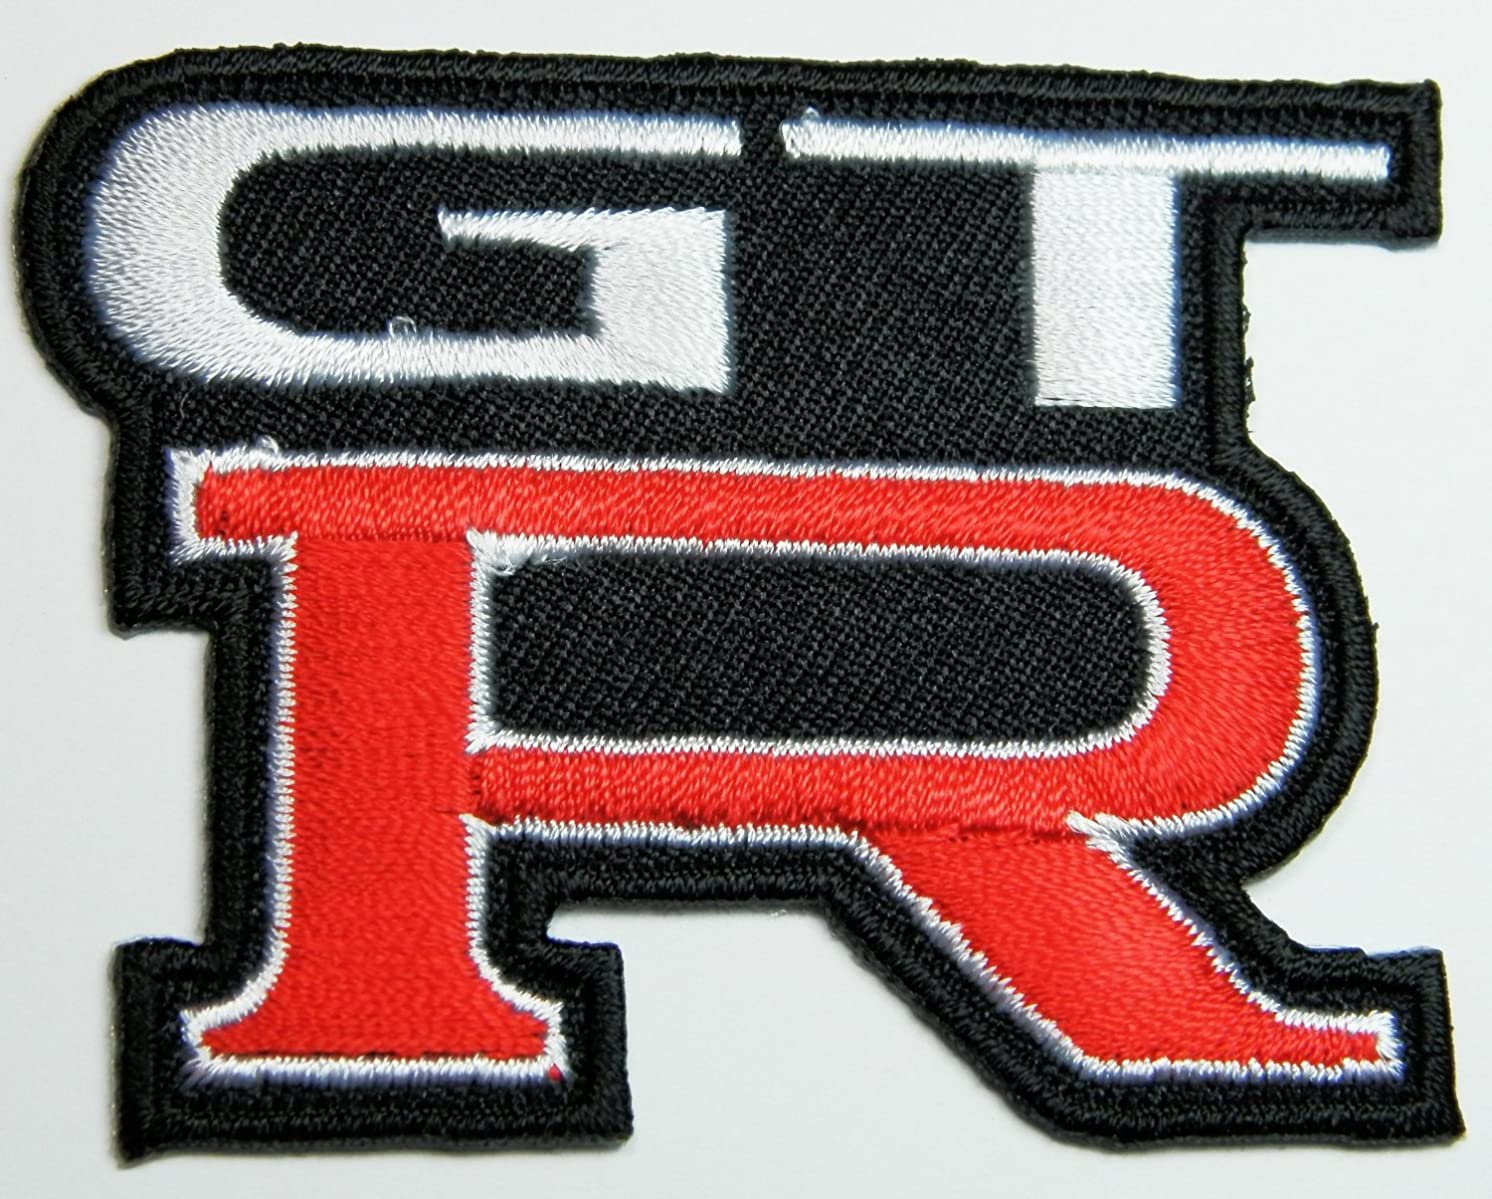 GTR Brand of Car Motorsport Racing Patch for Dry Clothing ,Jacket ,t-shirts ,Cap Patch Patch Sew Iron on Logo Embroidered Badge Sign Emblem Costume BY Dreamhigh_skyland